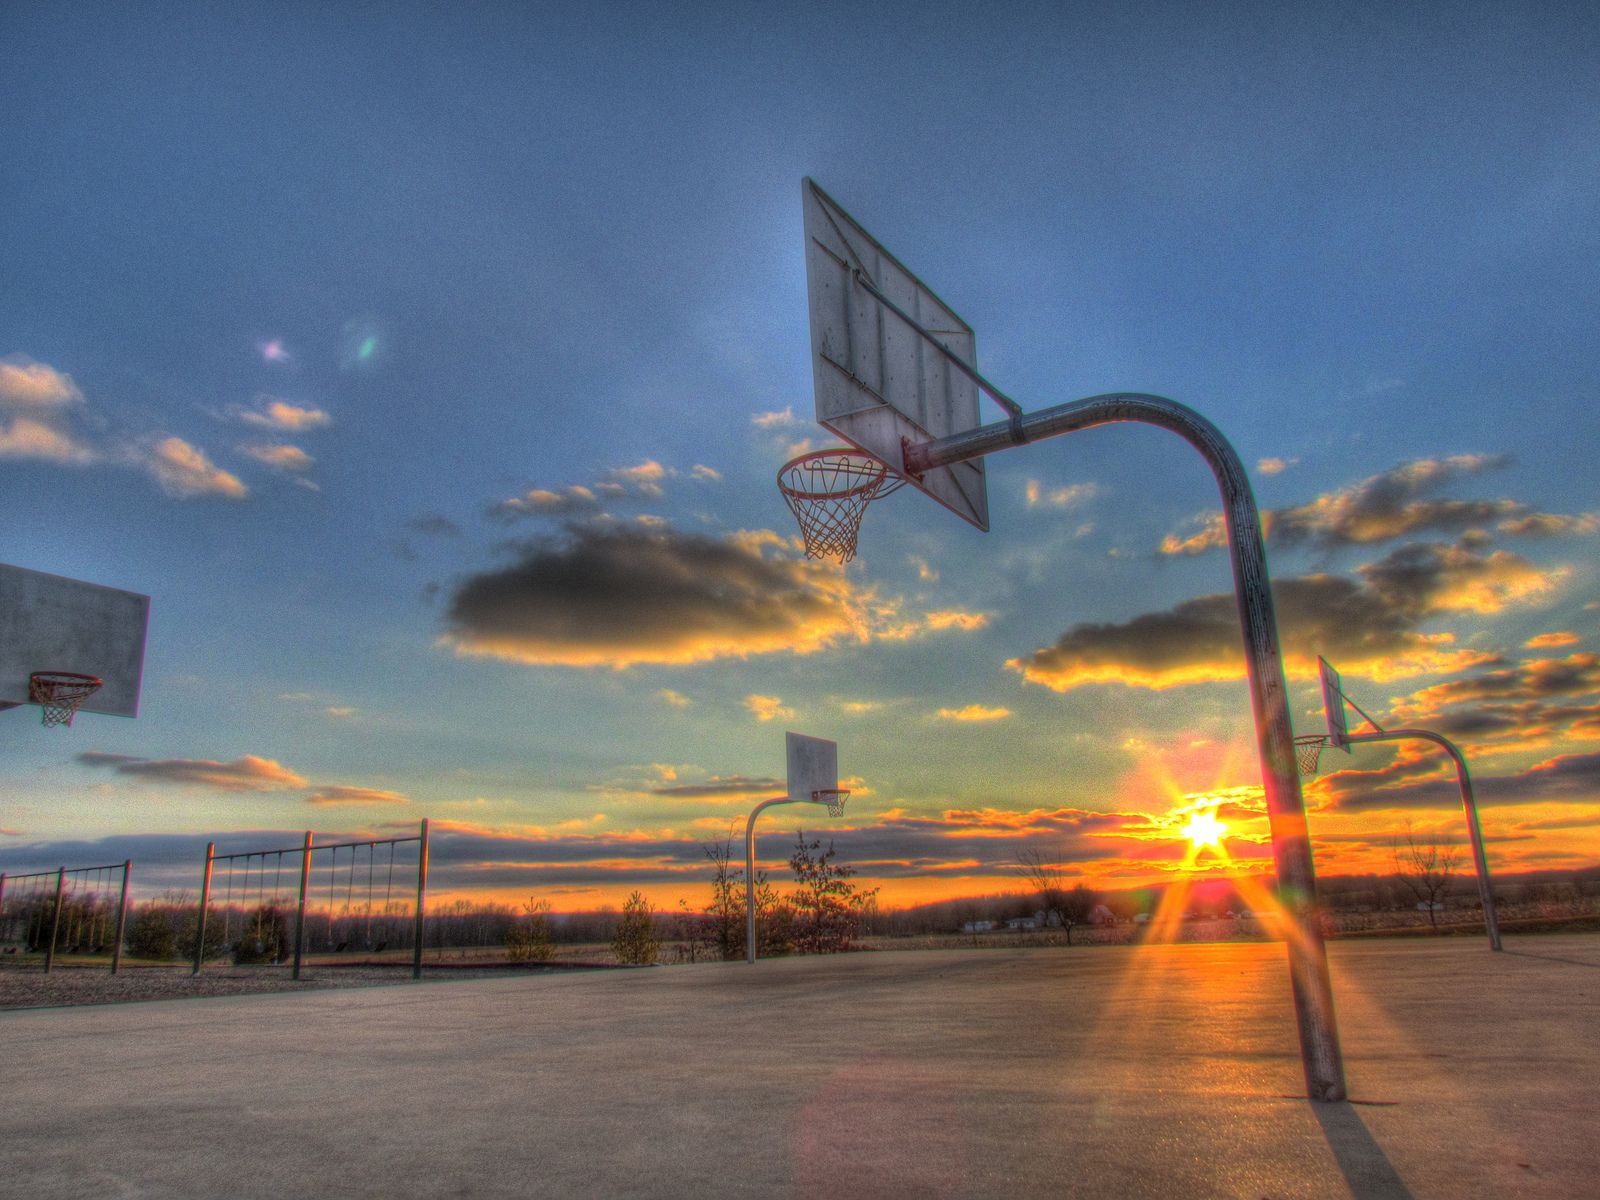 Hd Basketball Court Wallpaper For Iphone with HD Wallpaper 1600x1200